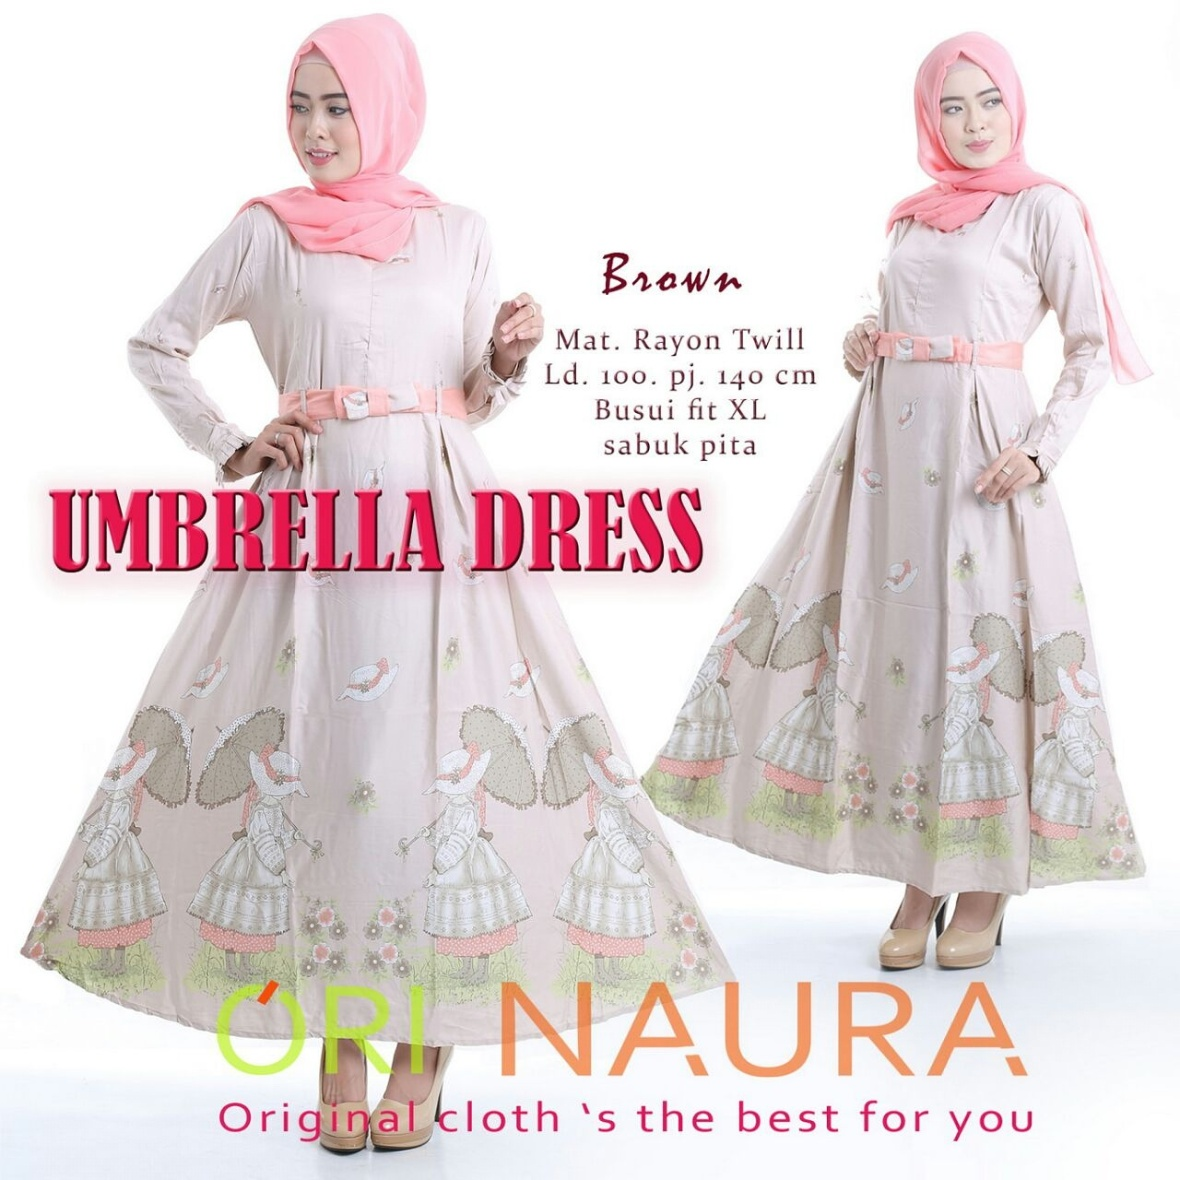 umbrella-dress-brown